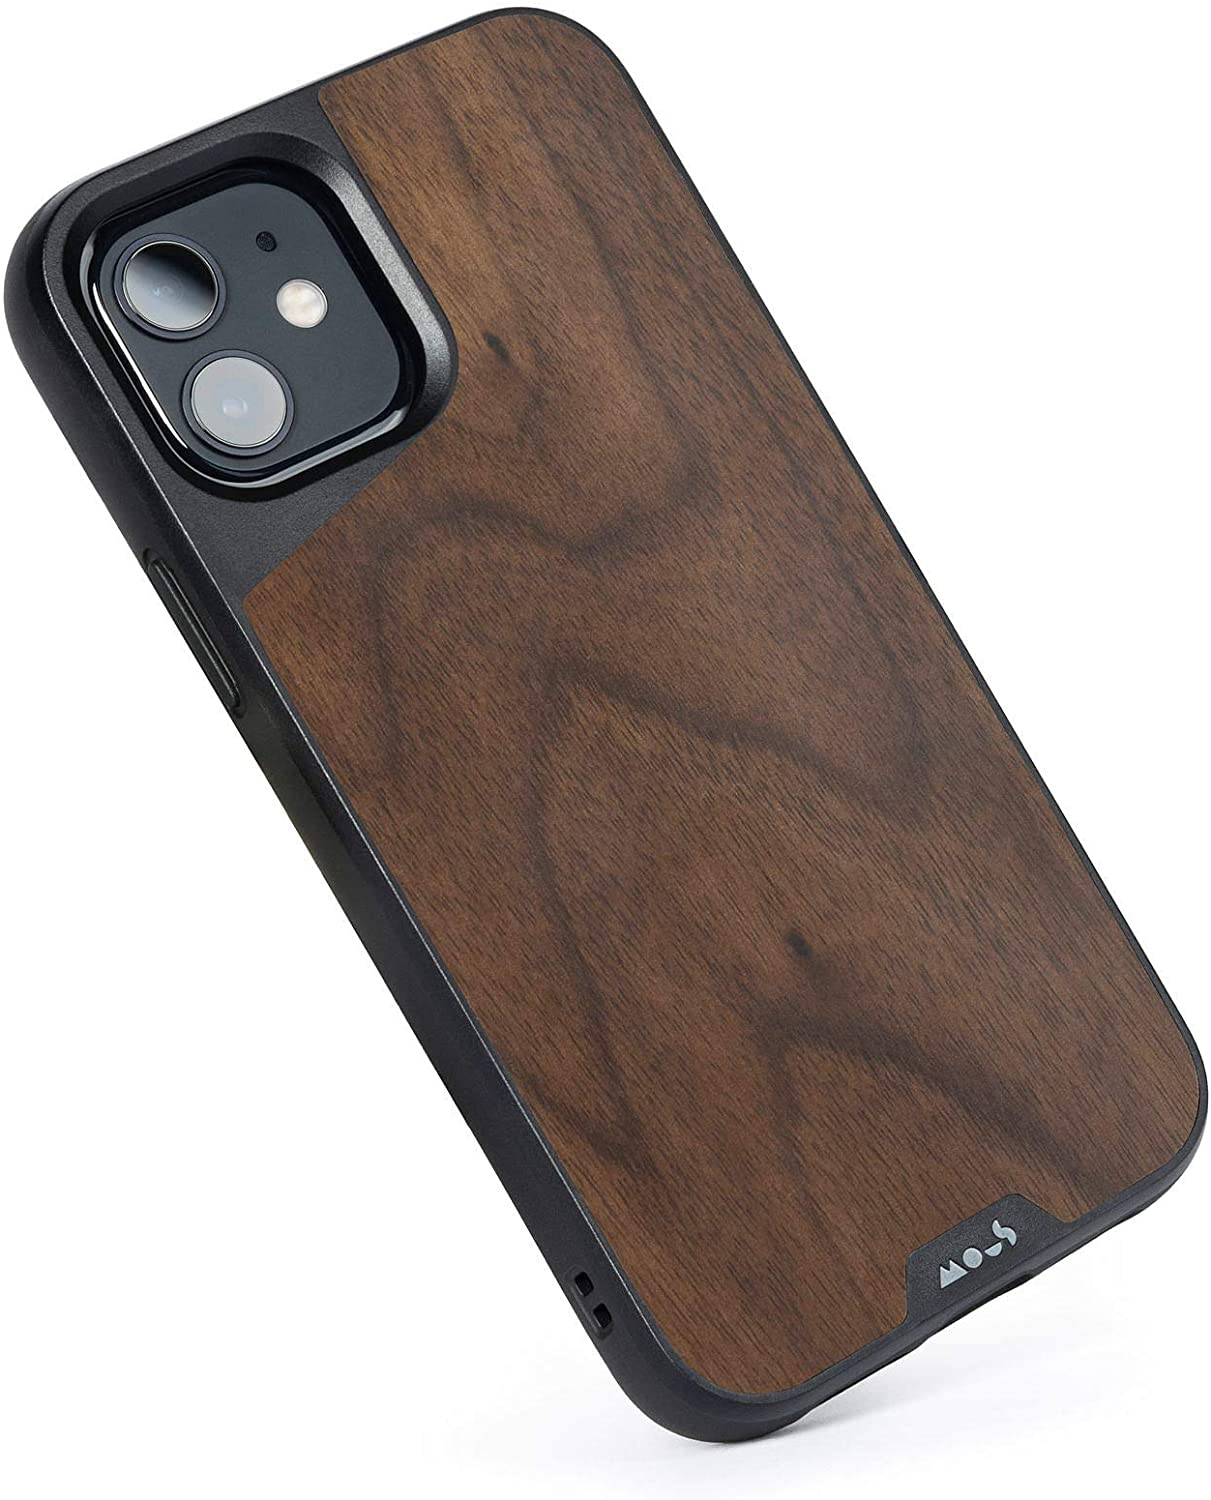 Mous - Excellence Protective Case for iPhone Cheap bargain Wa Limitless 4.0 Pro 12